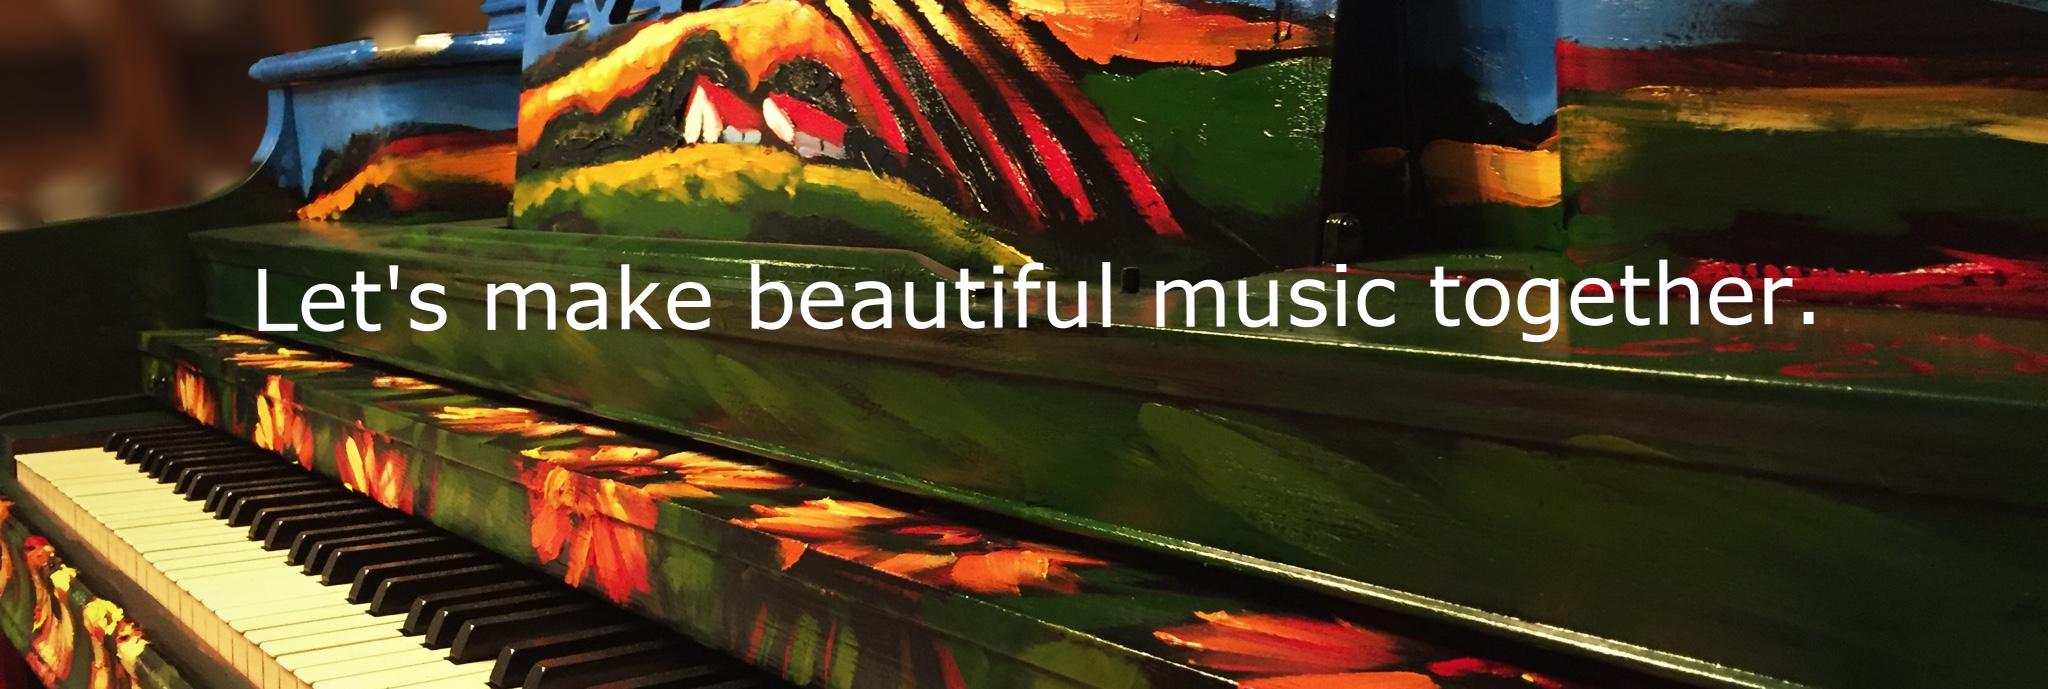 Let's make beautiful music together